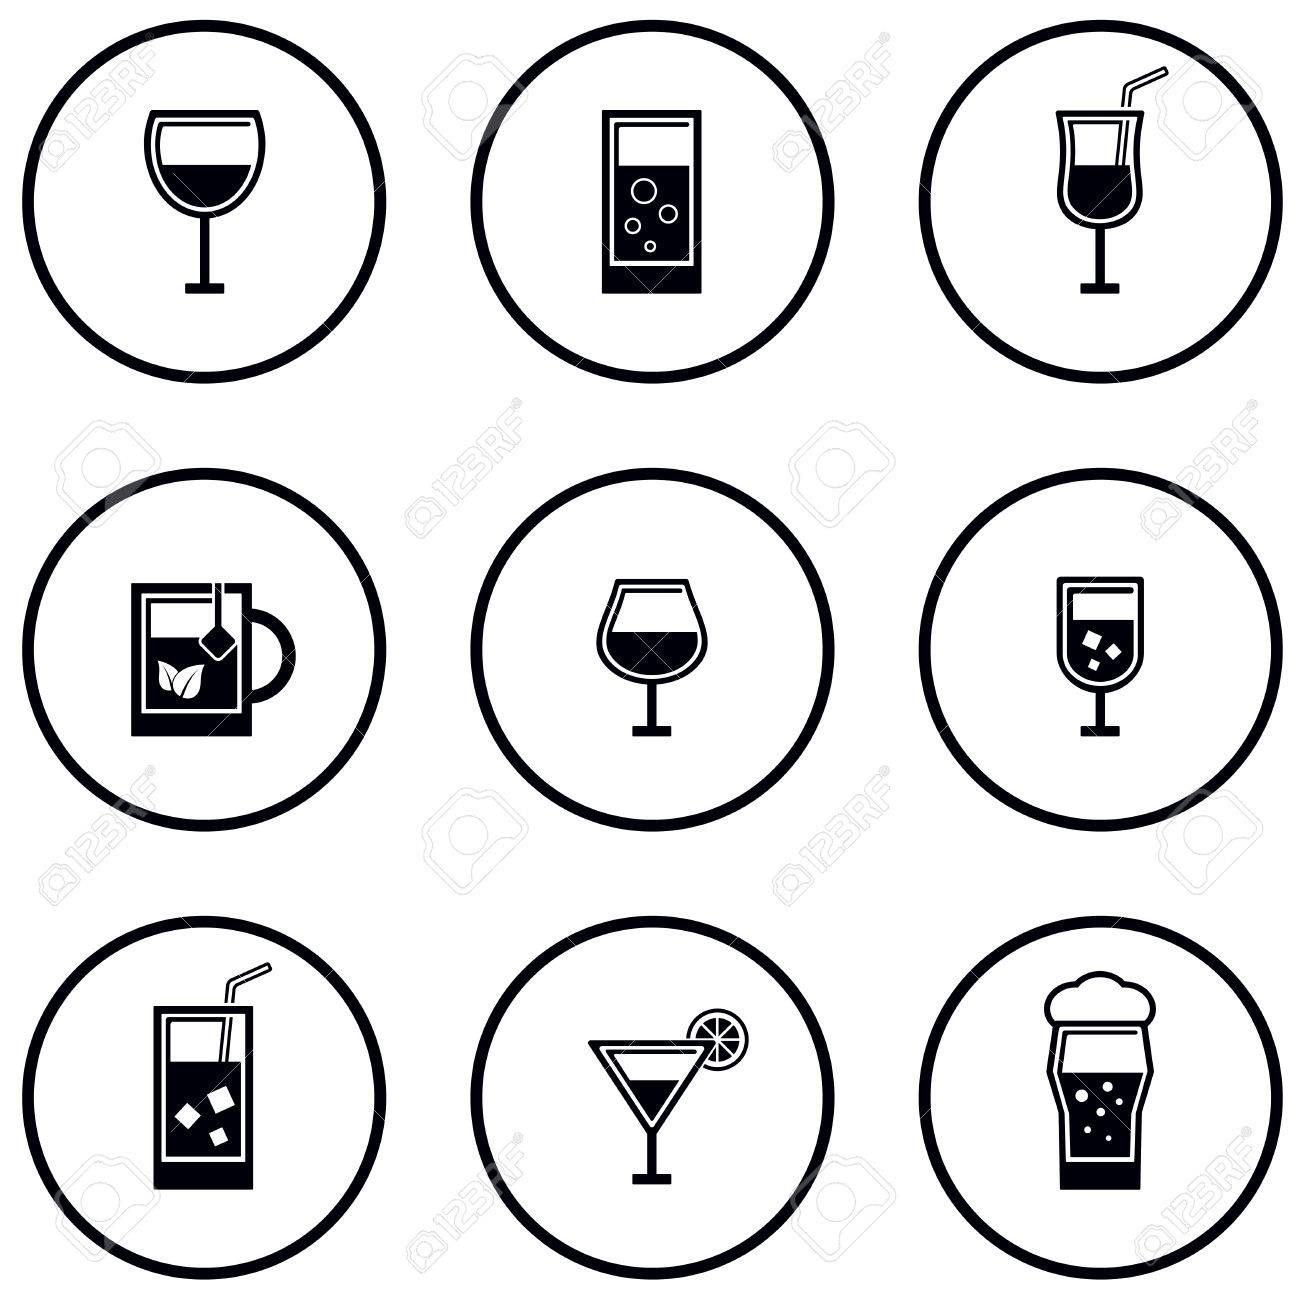 round glass and goblet icon set on white background - 55068189